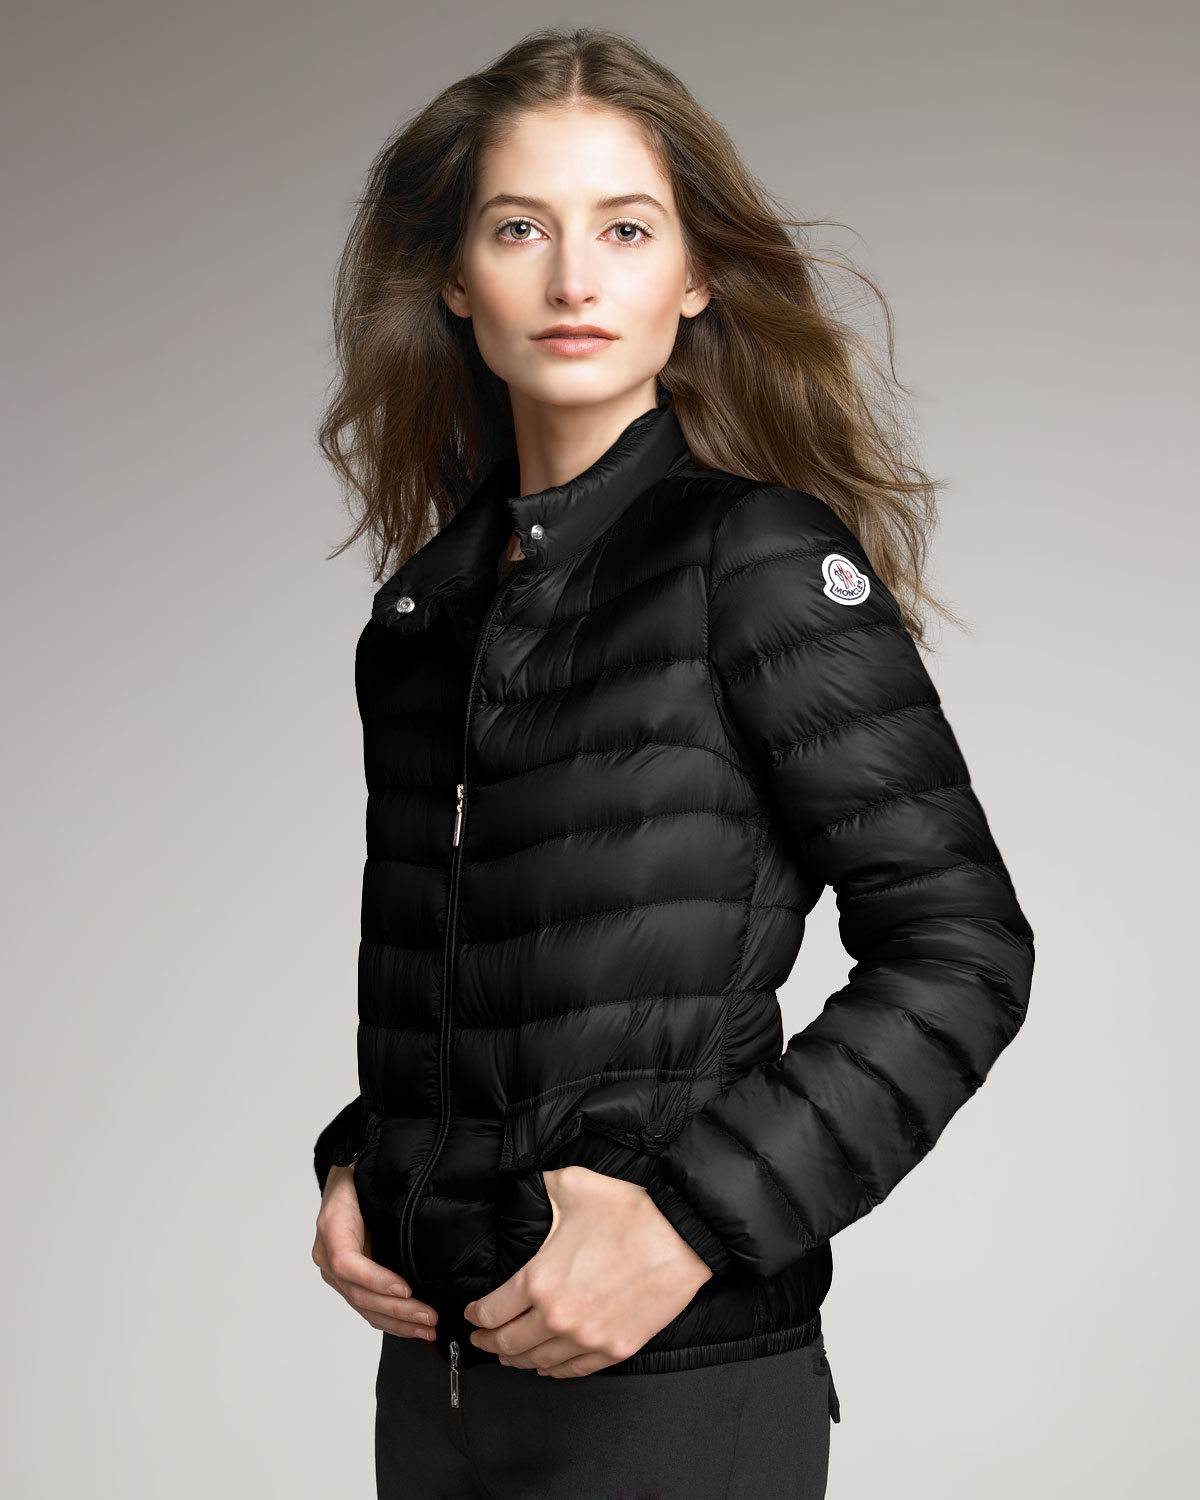 403c940d593ff Gallery. Previously sold at: Neiman Marcus · Women's Puffer Jackets